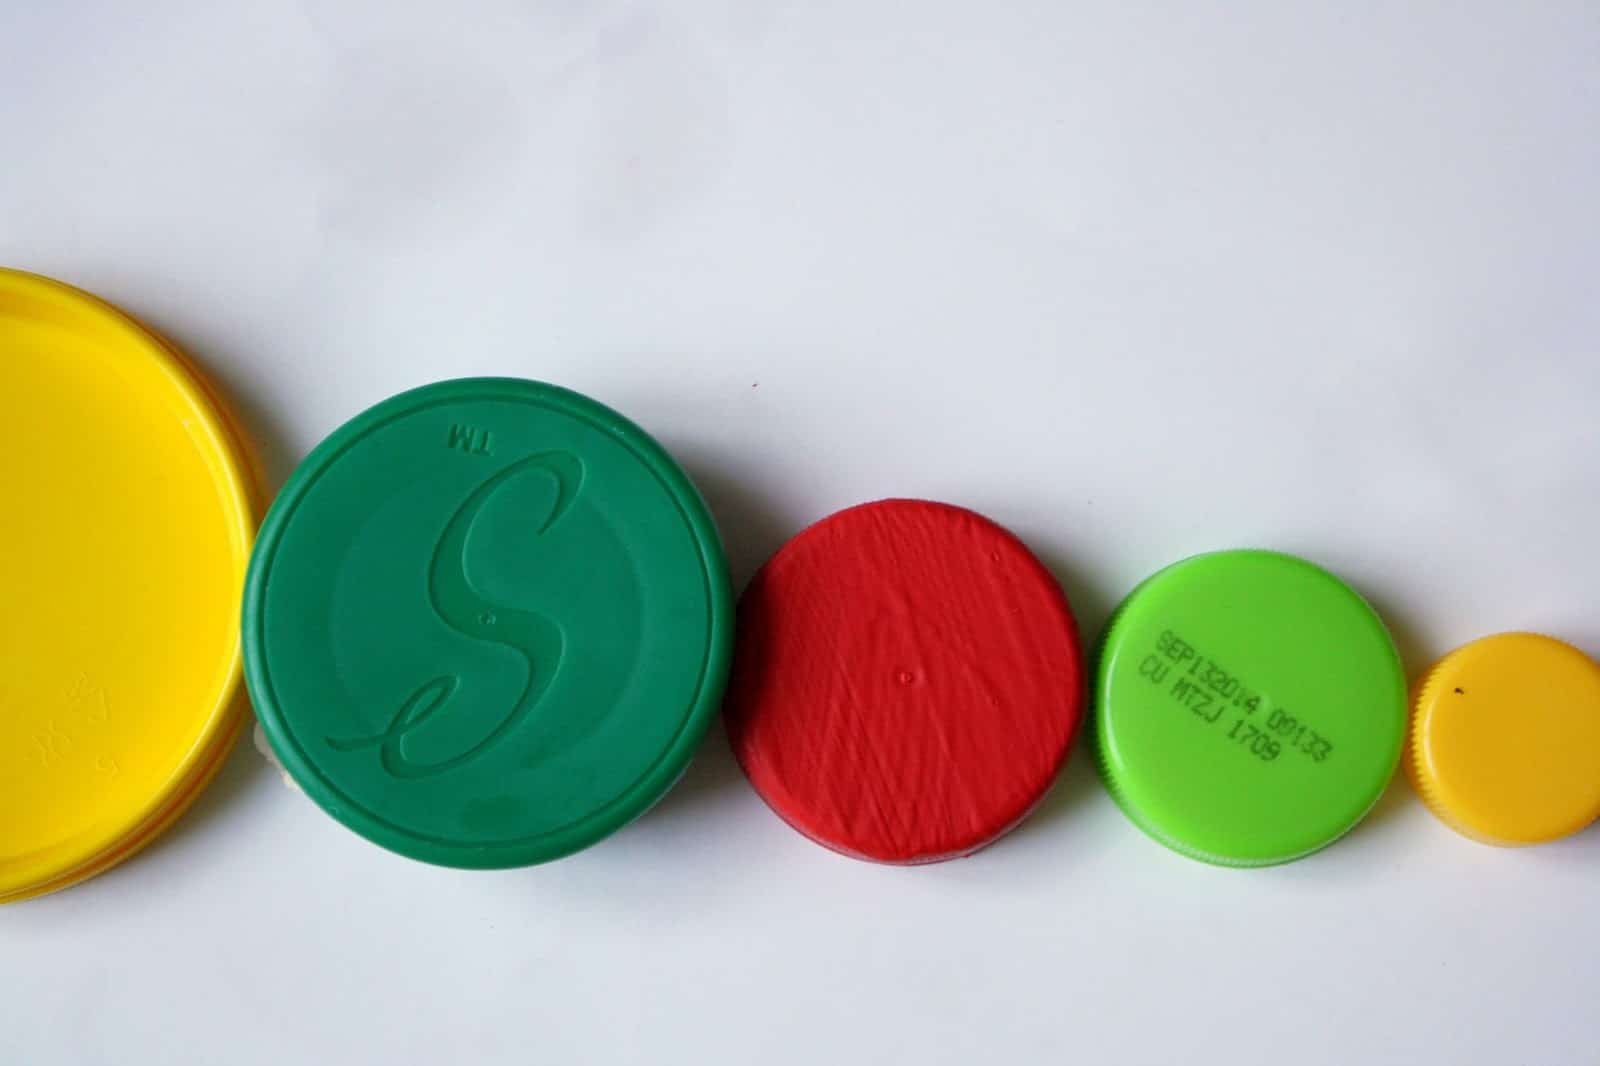 Preschool Activities for Math: Ordering lids by size